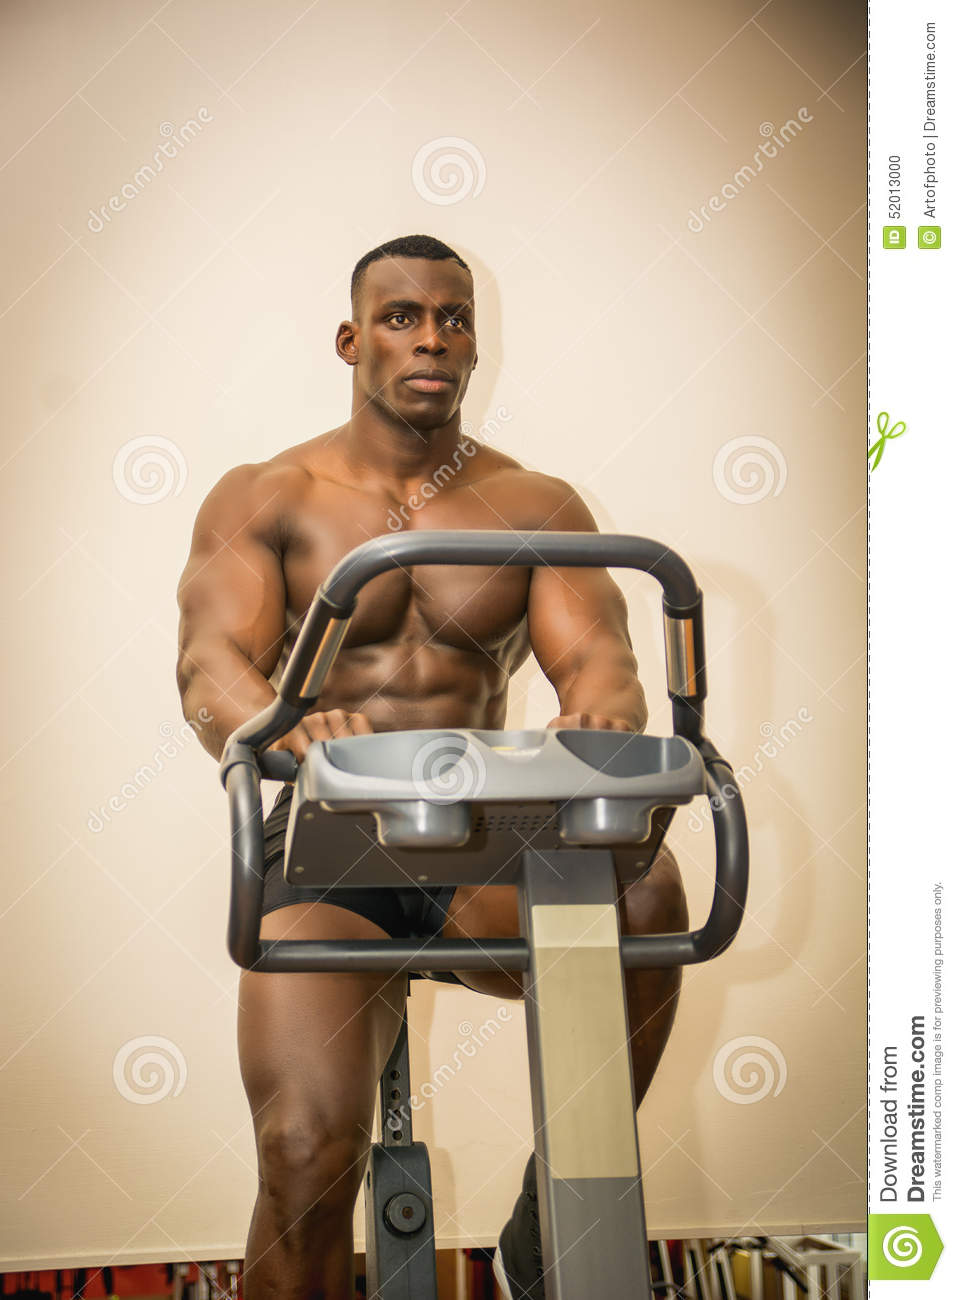 Muscular Black Bodybuilder Exercising On Stationary Bike In Gym